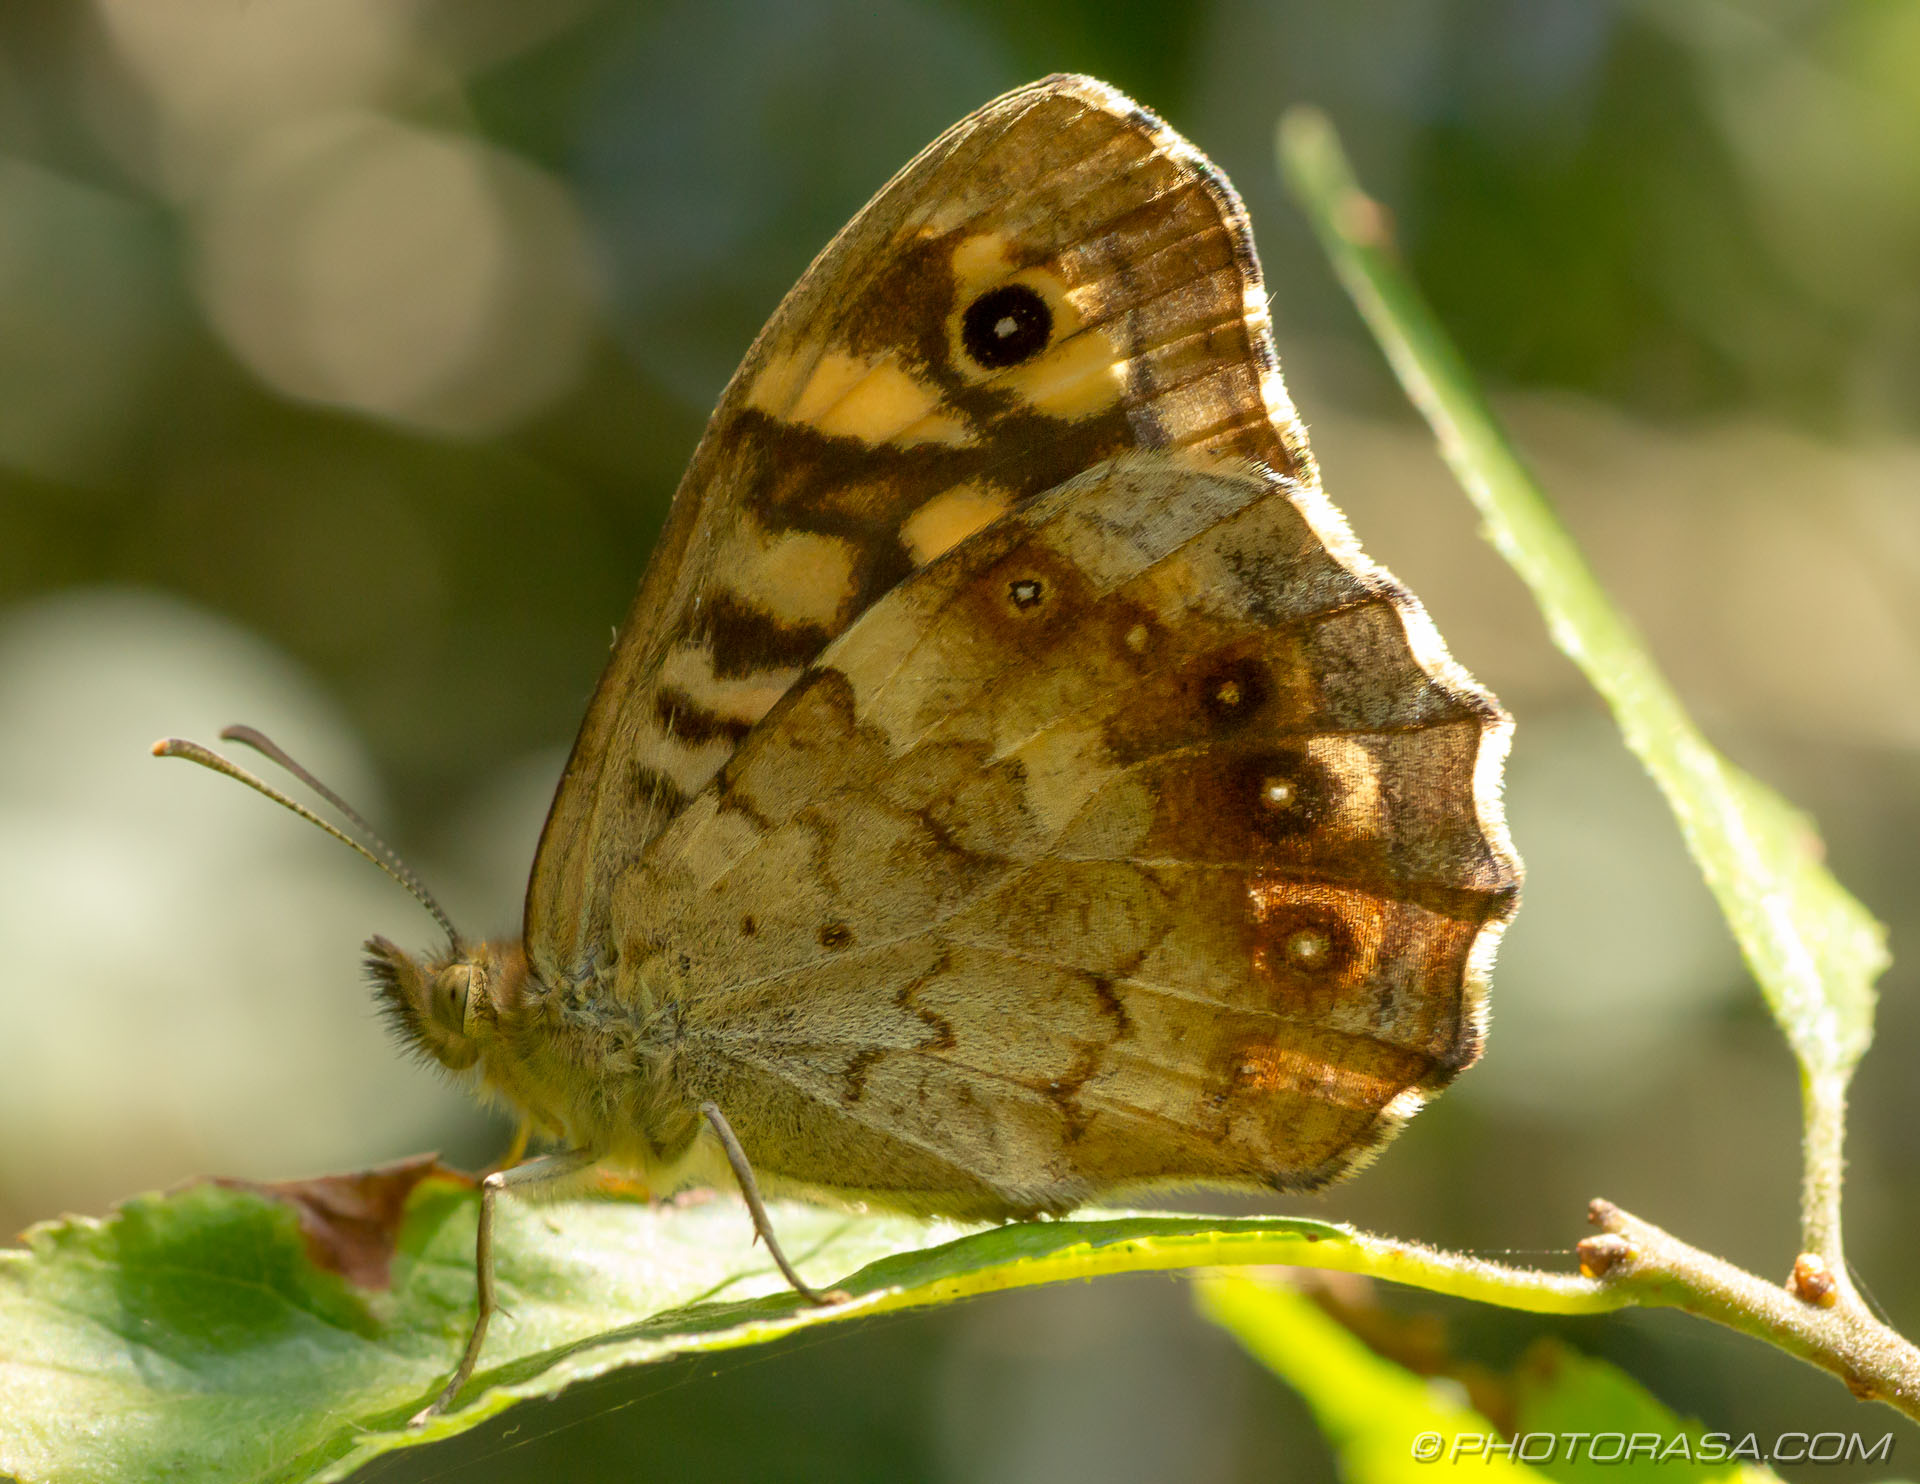 http://photorasa.com/speckled-wood-butterfly/speckled-wood-butterfly-underside/